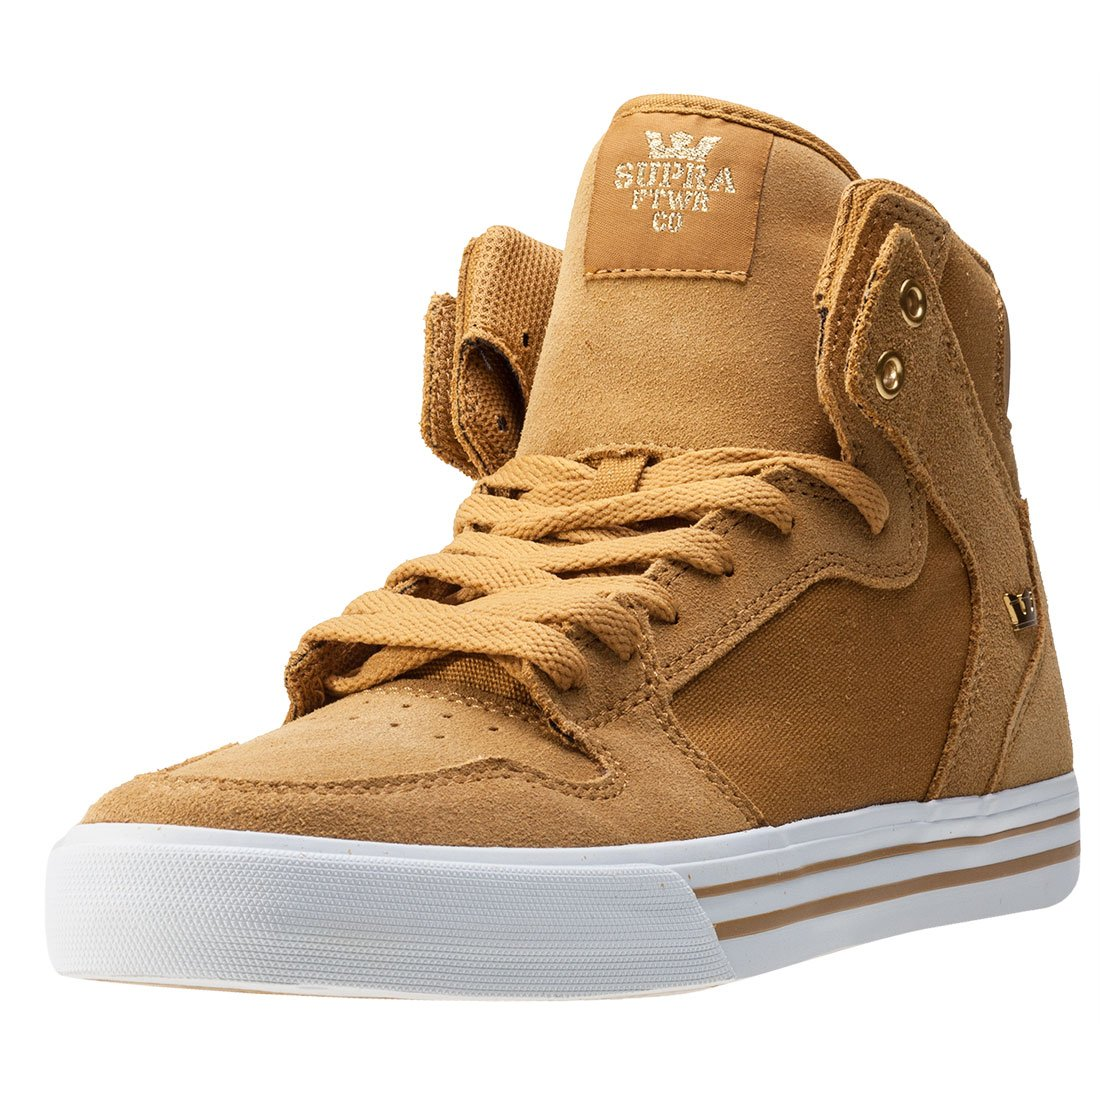 Supra Vaider LC Sneaker B01IFLTJRU Medium / 12 C/D US Women / 10.5 D(M) US Men|Amber Gold/White